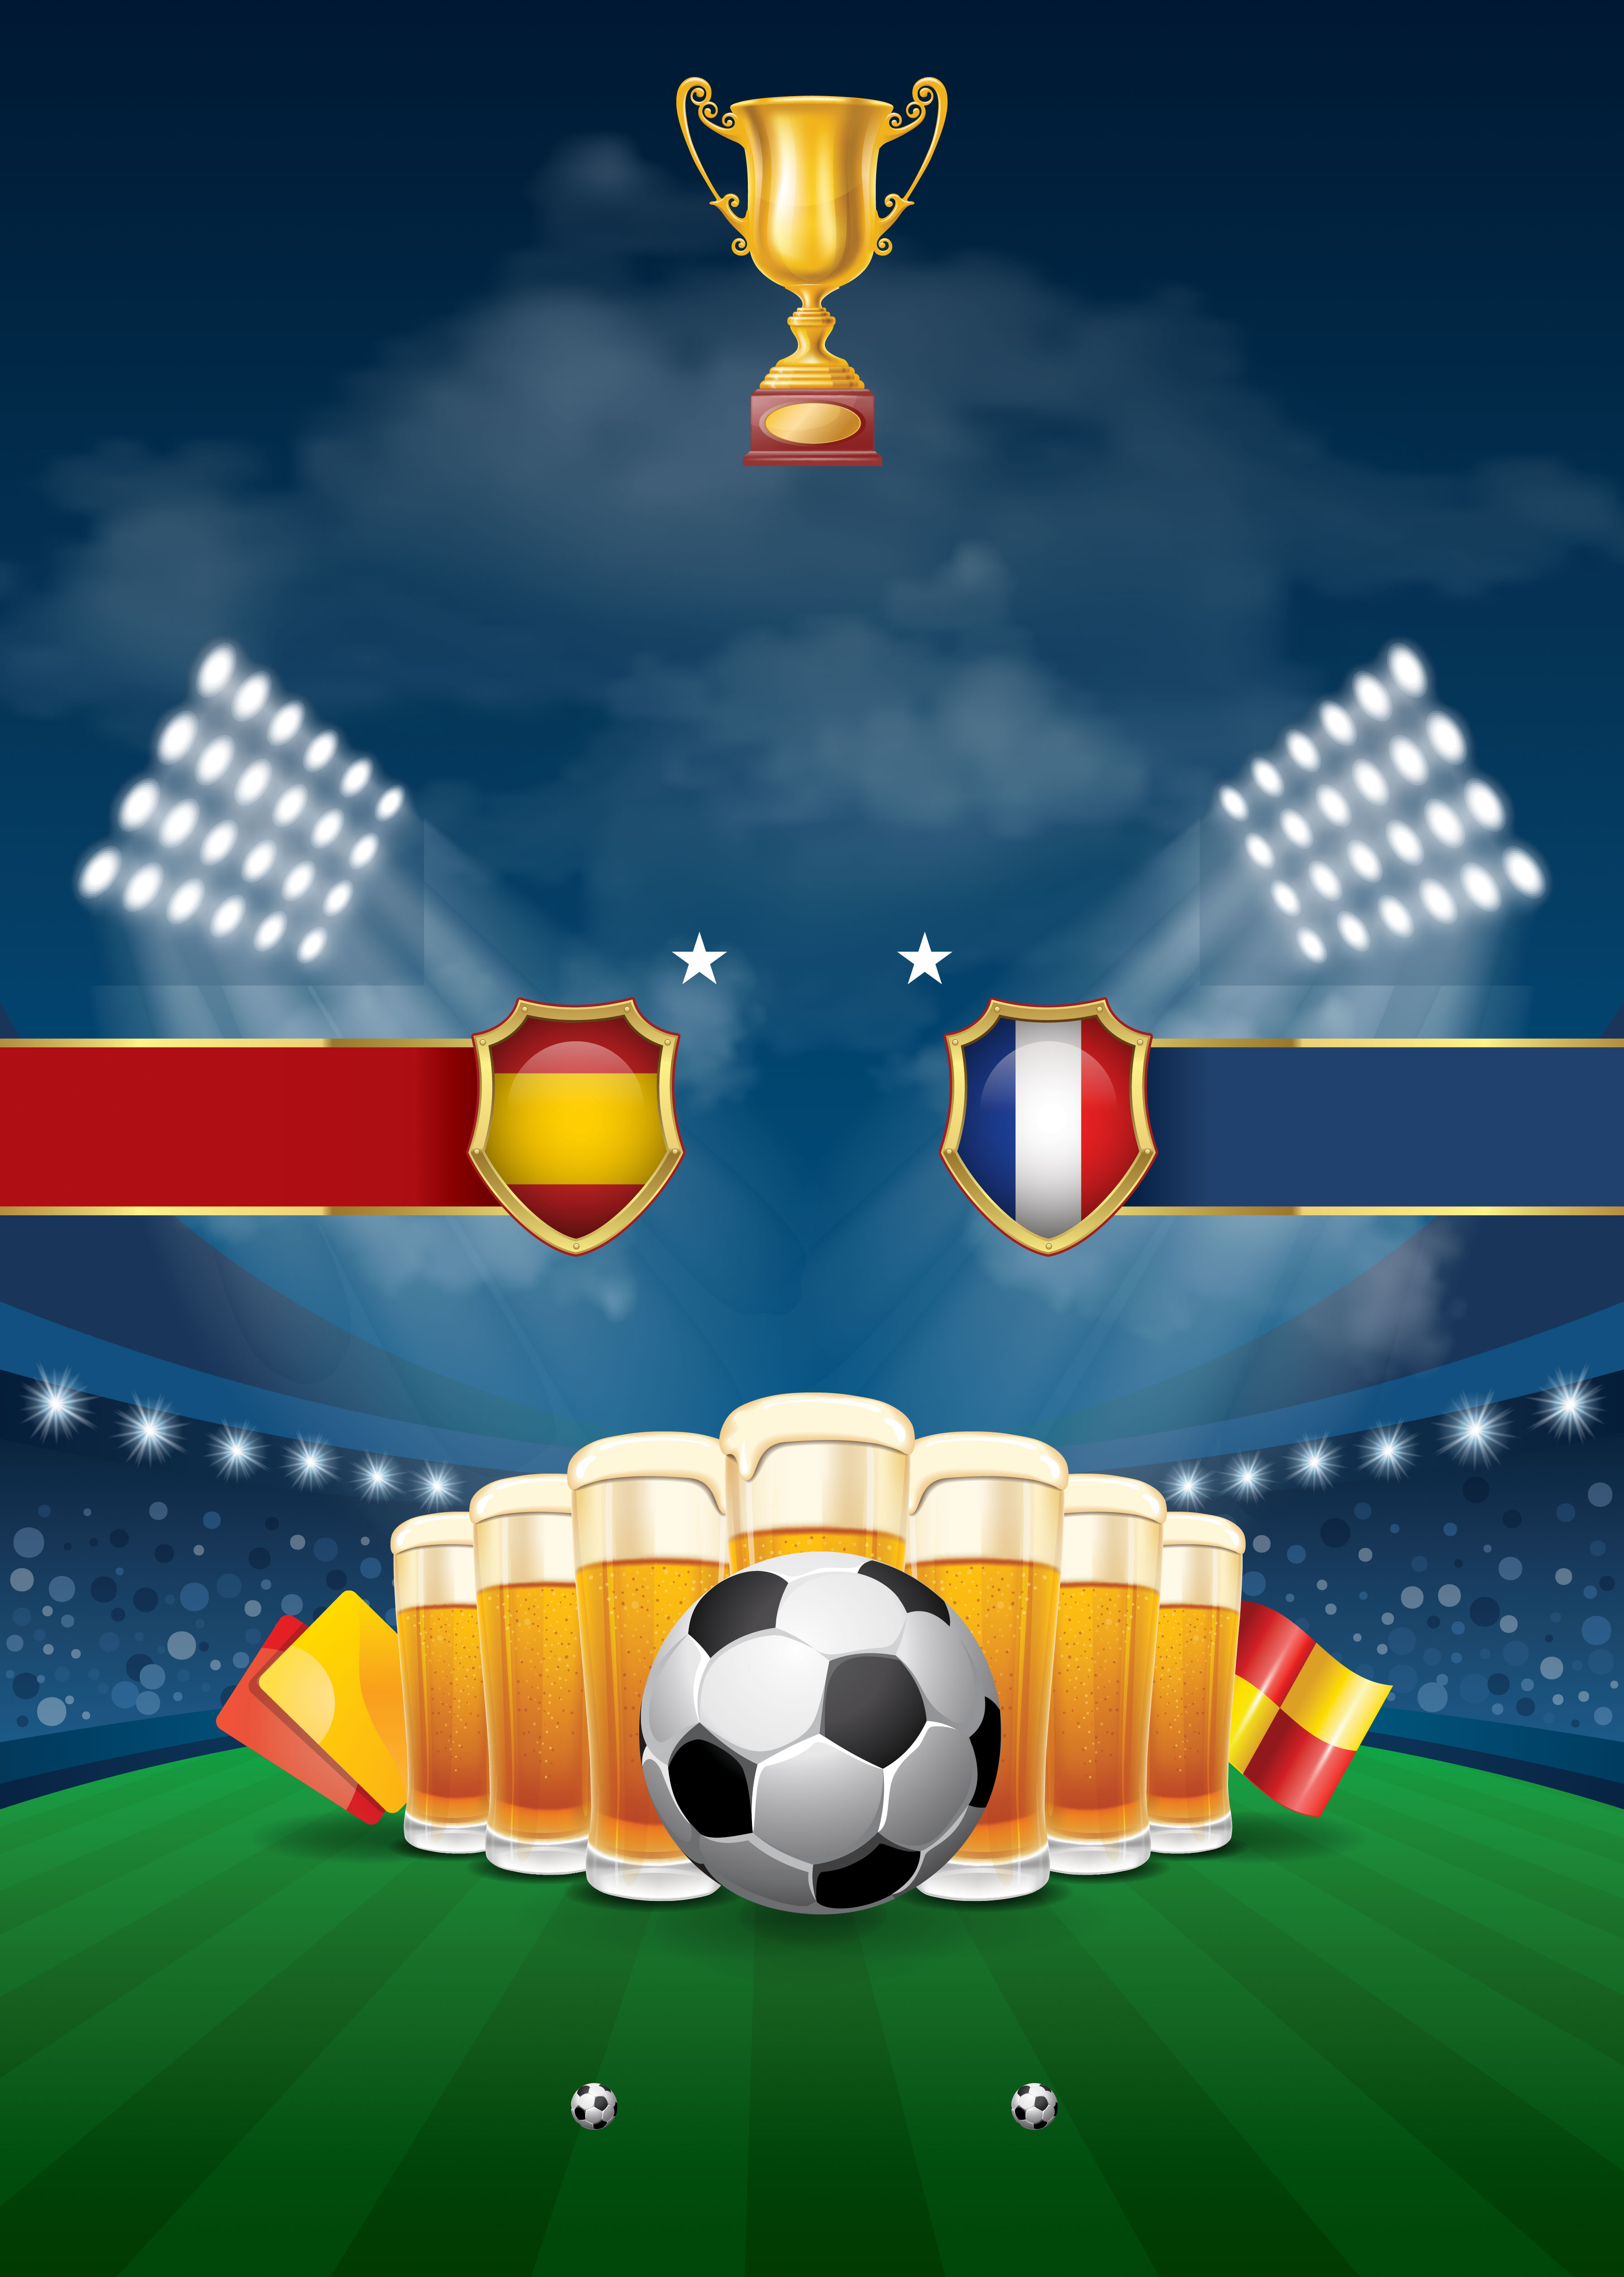 Passion World Cup Soccer Poster Background Template  Football  Poster  Physical Background Image